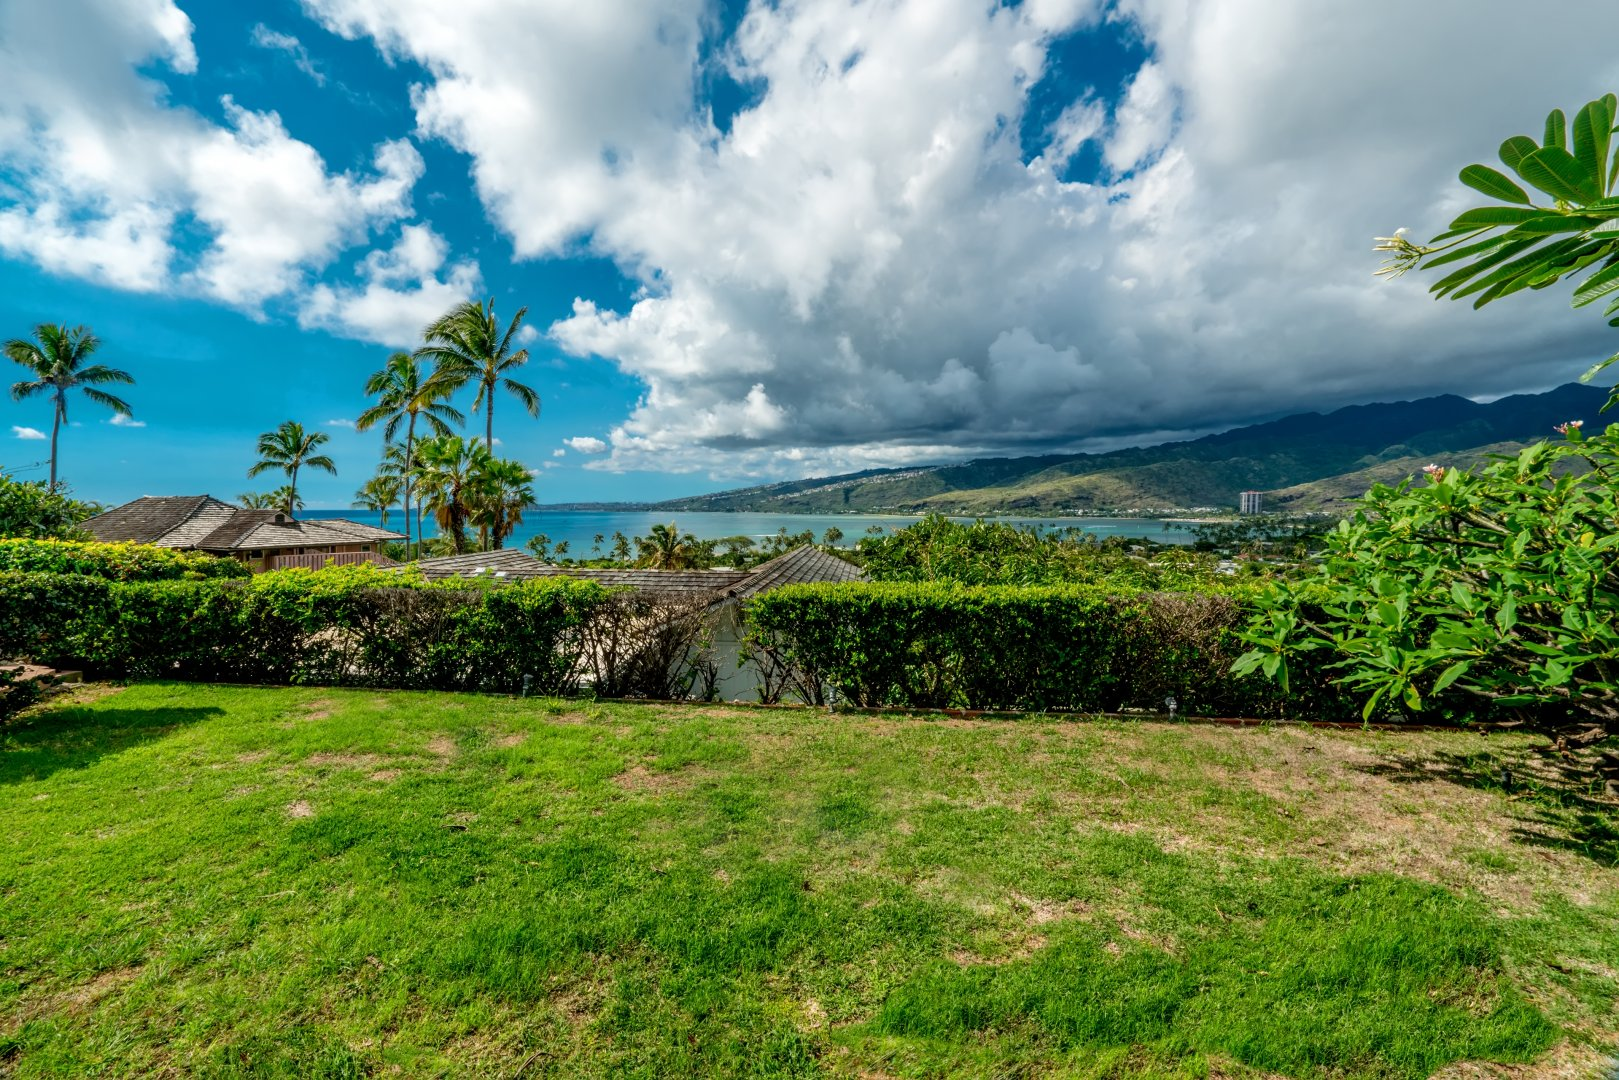 makaweli singles Prime single level four bedroom three bath makaweli street residence perfectly situated for enjoying the stunning diamond head, ocean and mountain views and capturing evening sunsets and cool tradewinds large lot of over 10,000 sq ft with room for a pool.